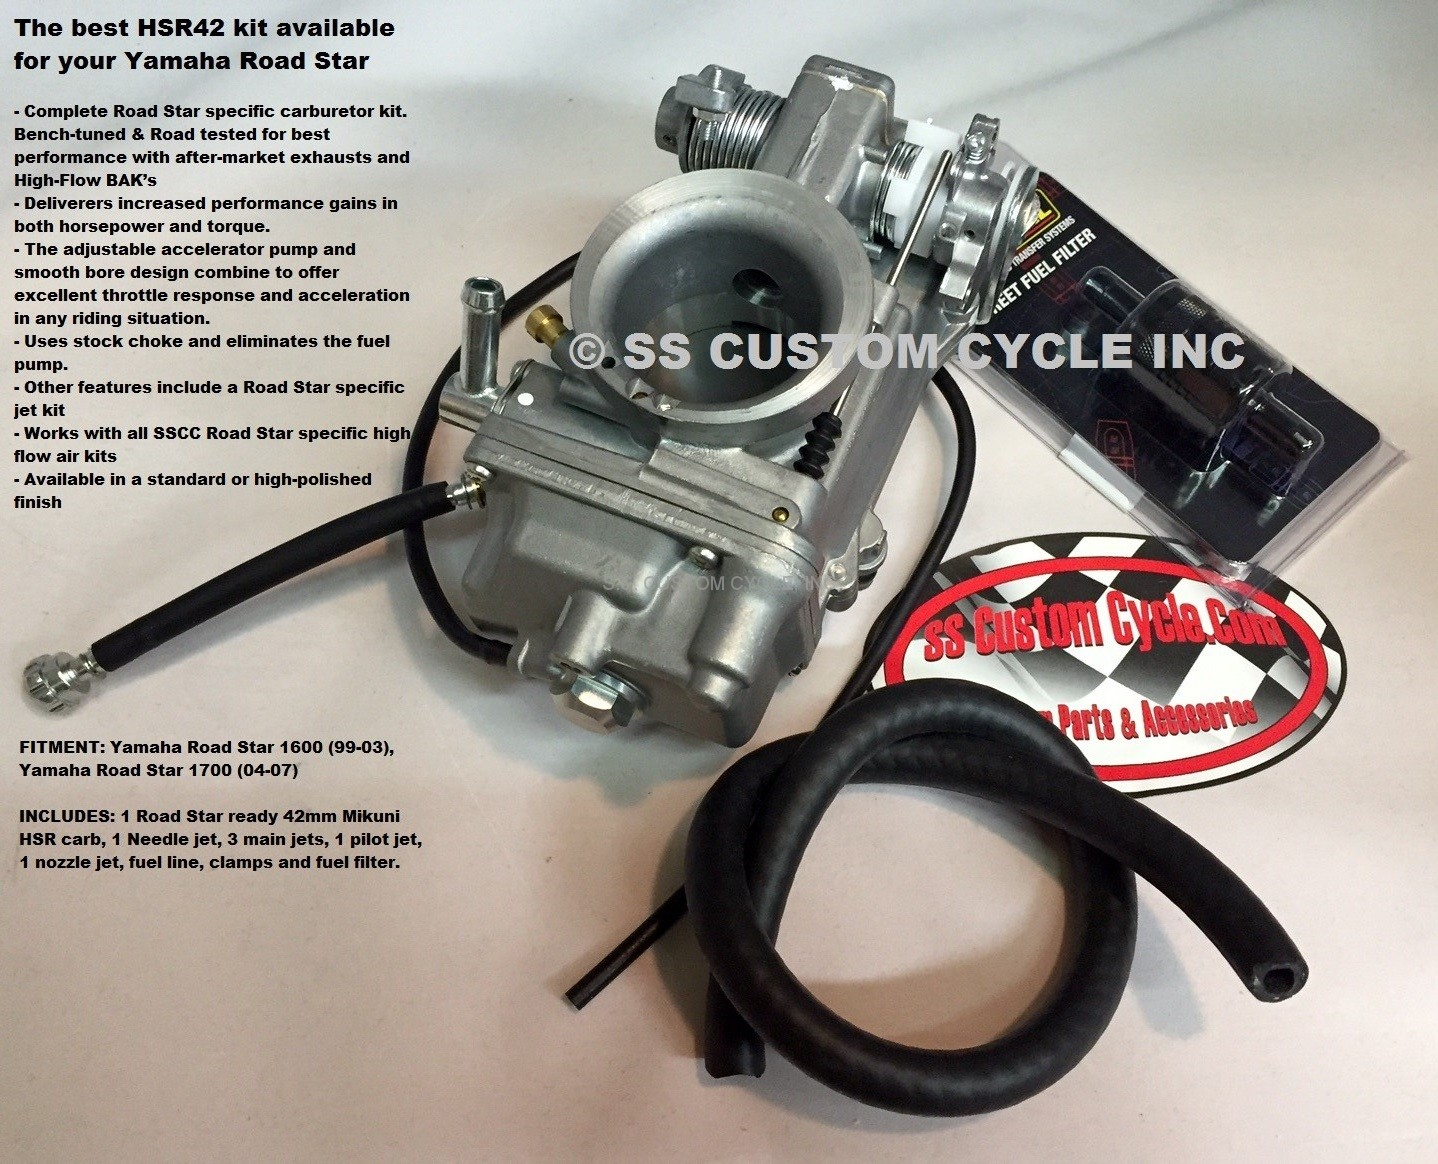 Sscc Hsr 42 Performance Carburetor Kit Ss Custom Cycle 2002 Yamaha Roadstar Warrior Wiring Harness Free